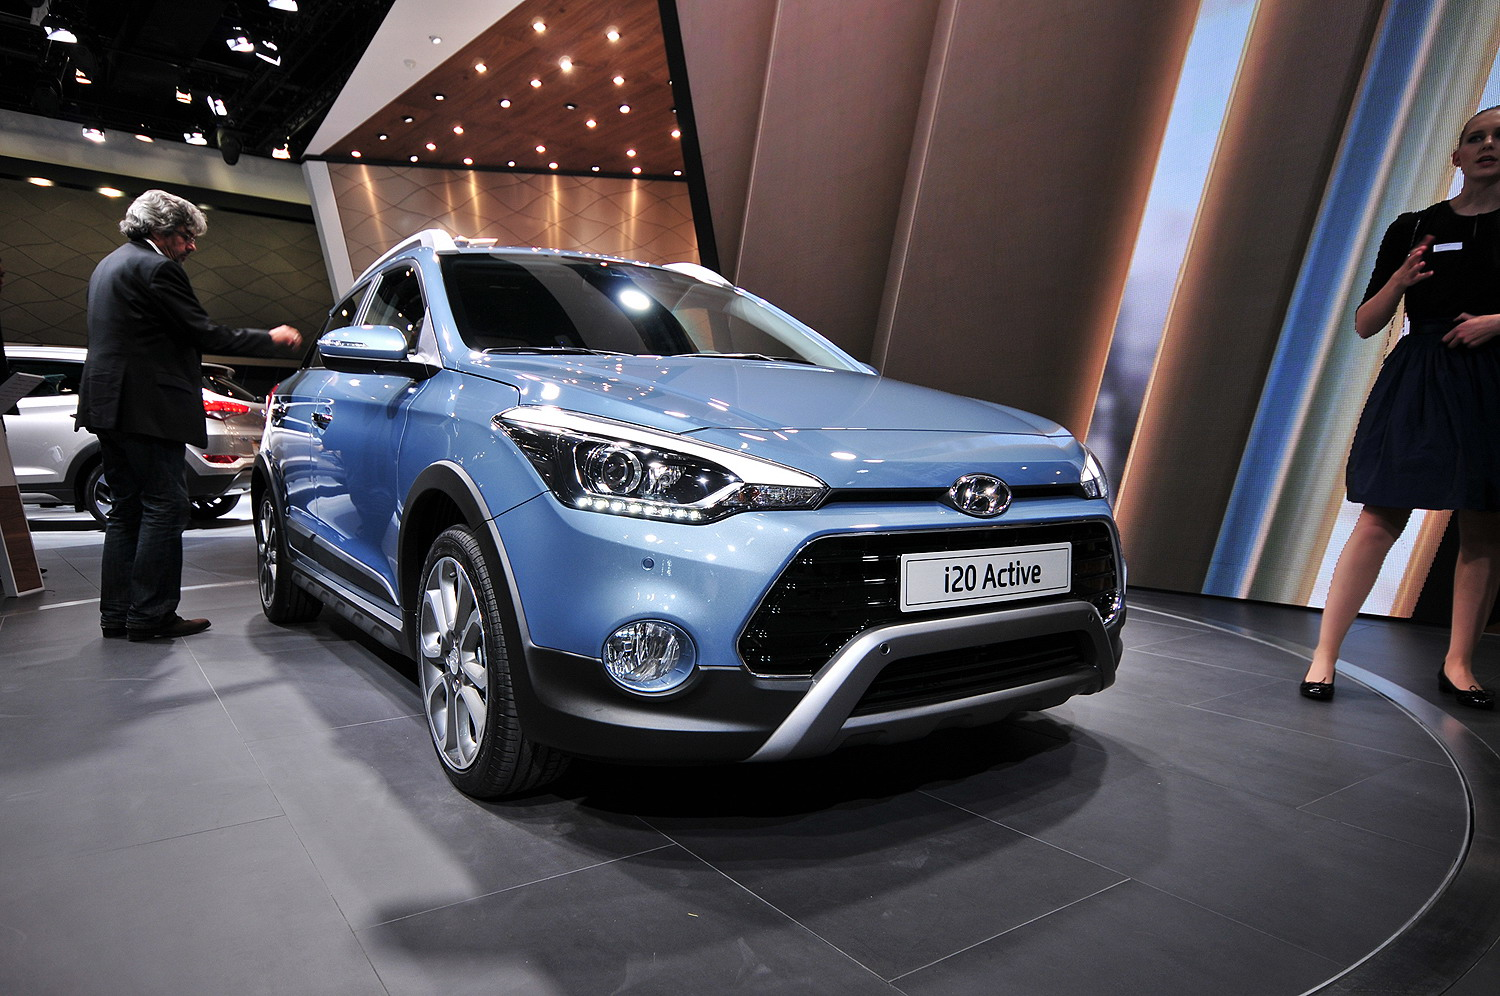 2016 hyundai i20 active gallery 647418 top speed. Black Bedroom Furniture Sets. Home Design Ideas